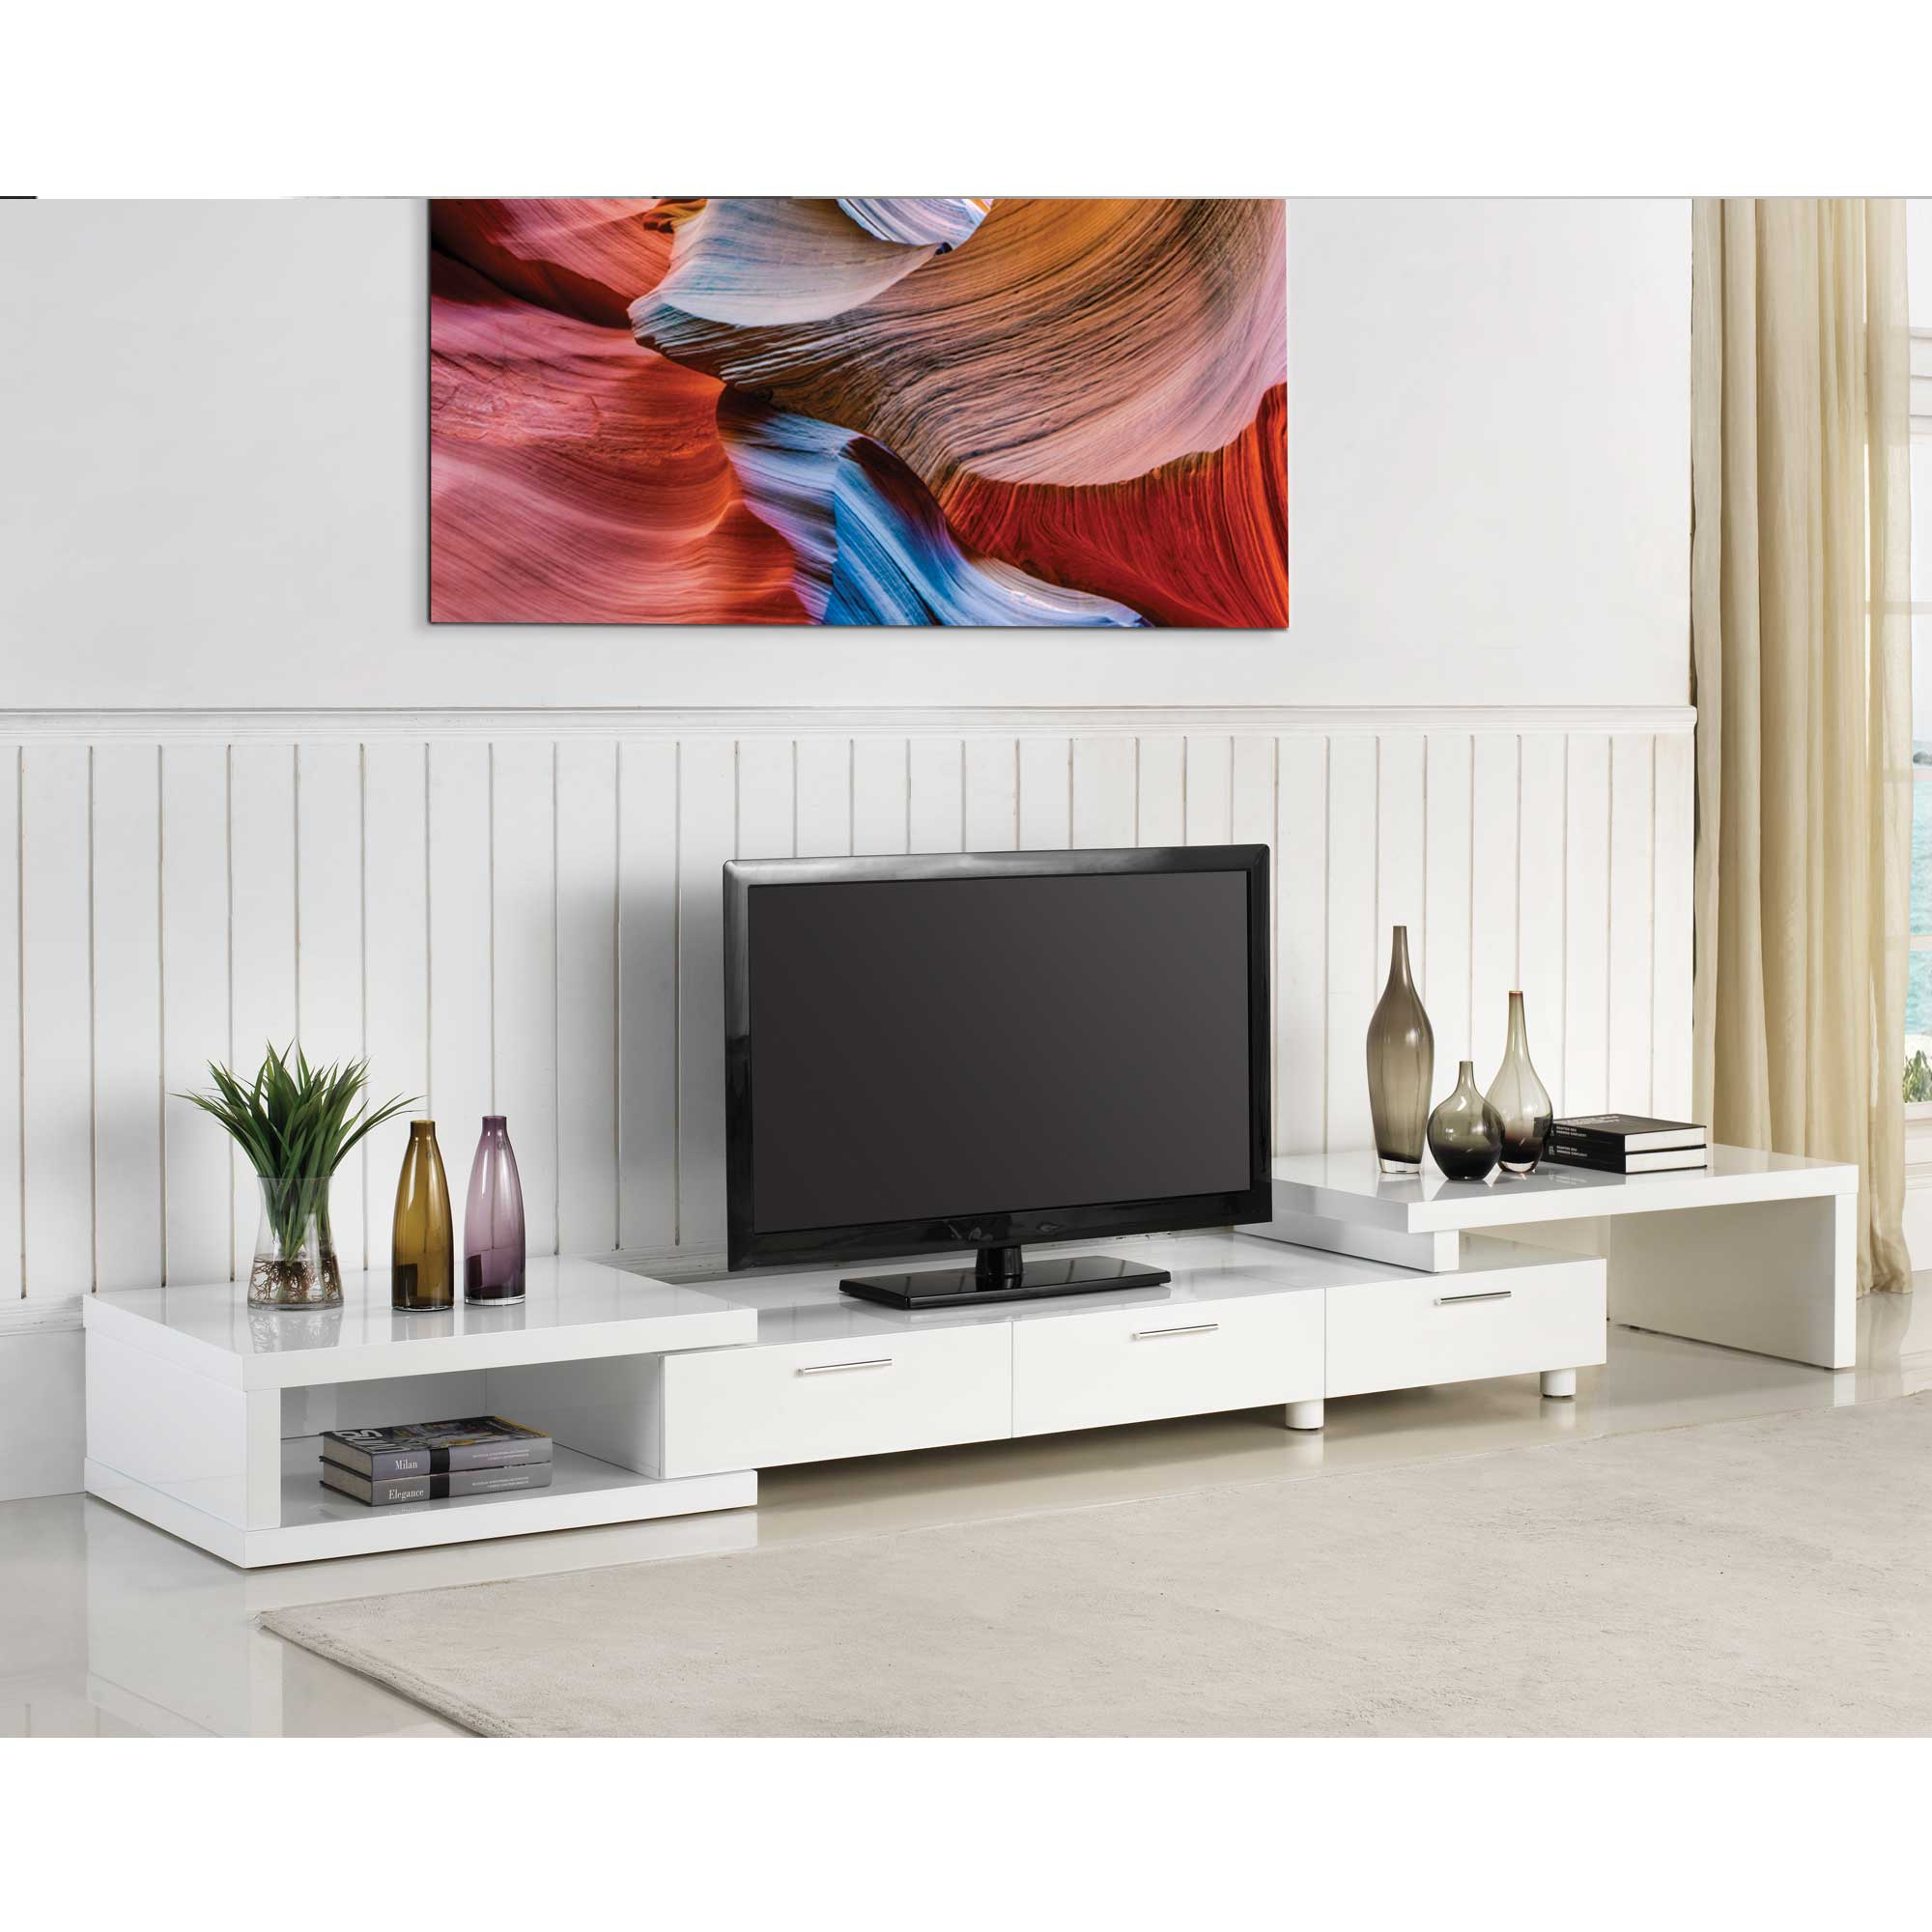 Expandable White TV Stand - HOME DECO